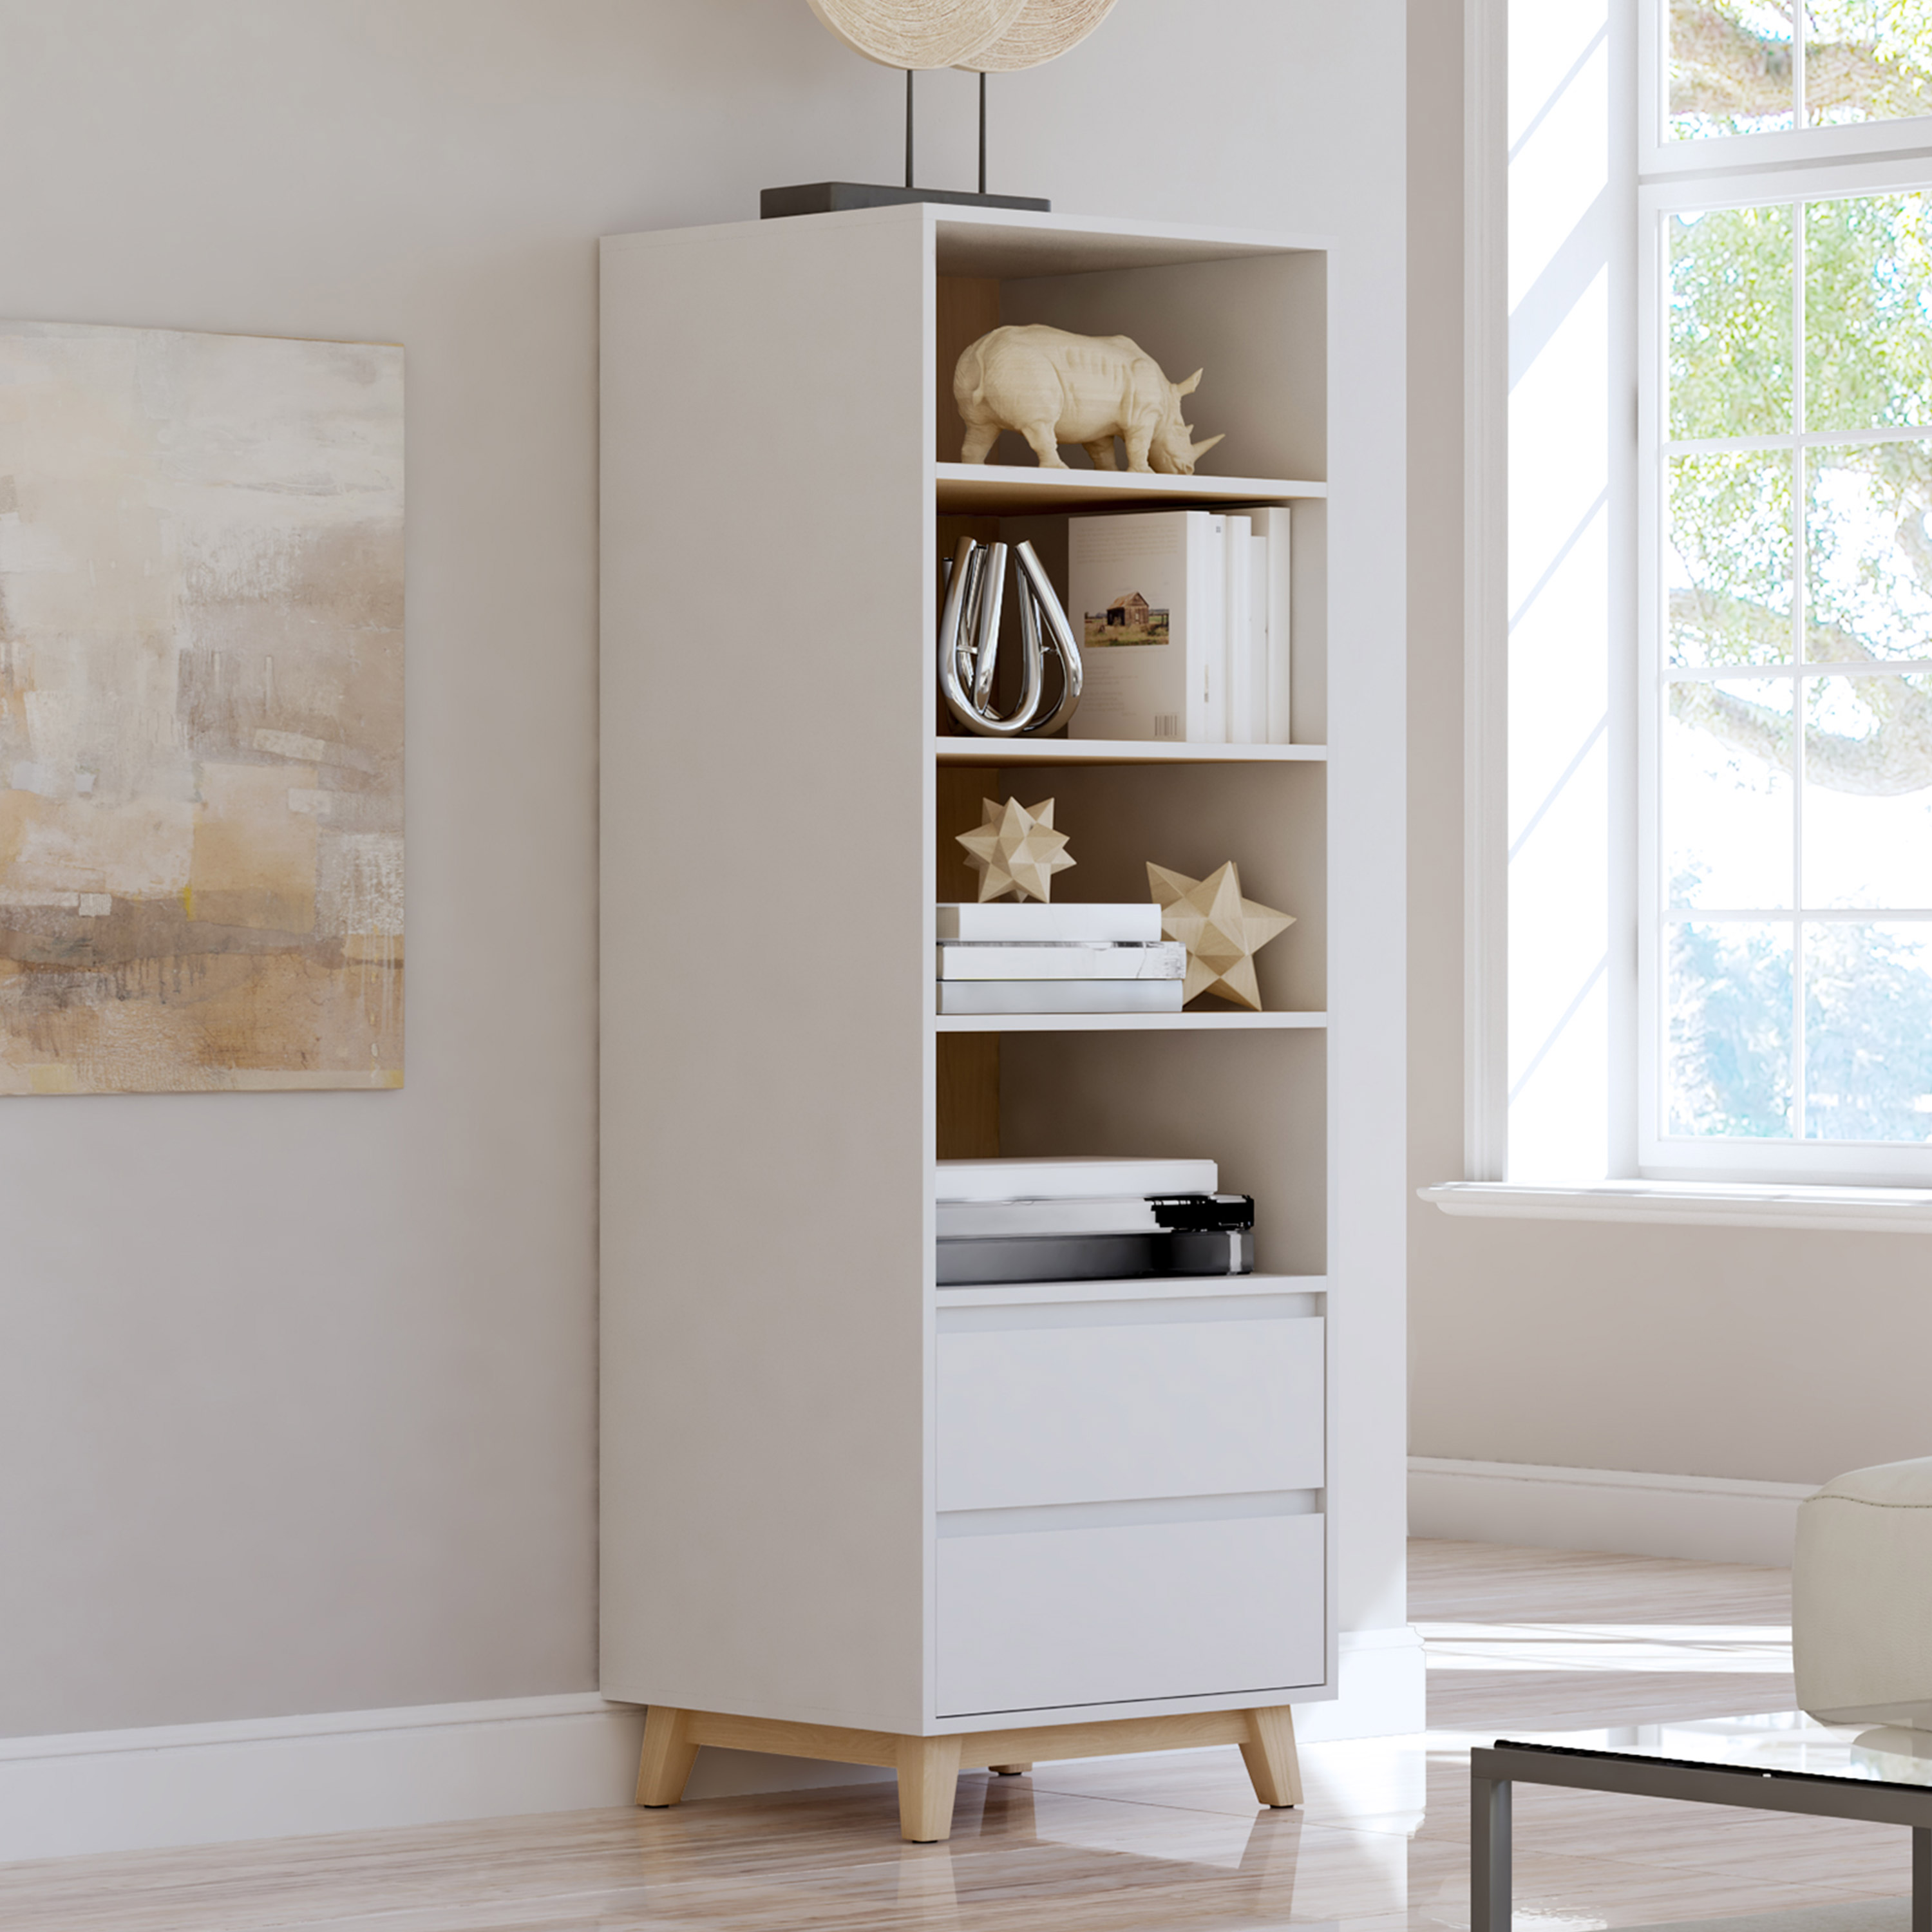 Mainstays Mid-Century Tower Book Shelf for Storage and Display, White with Natural Finished Accents